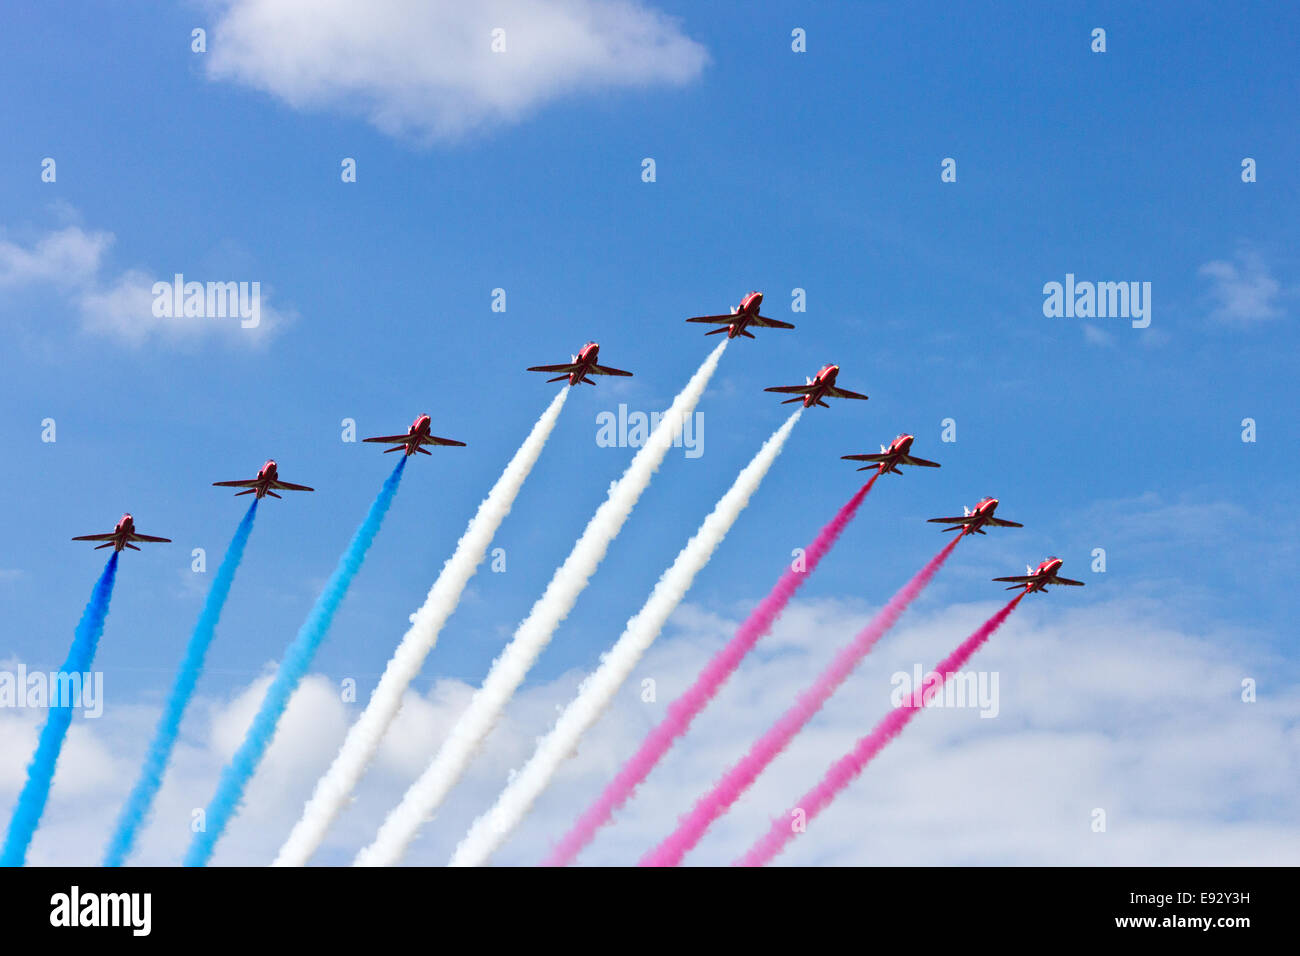 RAF Red Arrows performing at the Dutch Air Force Open House on June 21, 2014 in Gilze-Rijen airbase - Stock Image